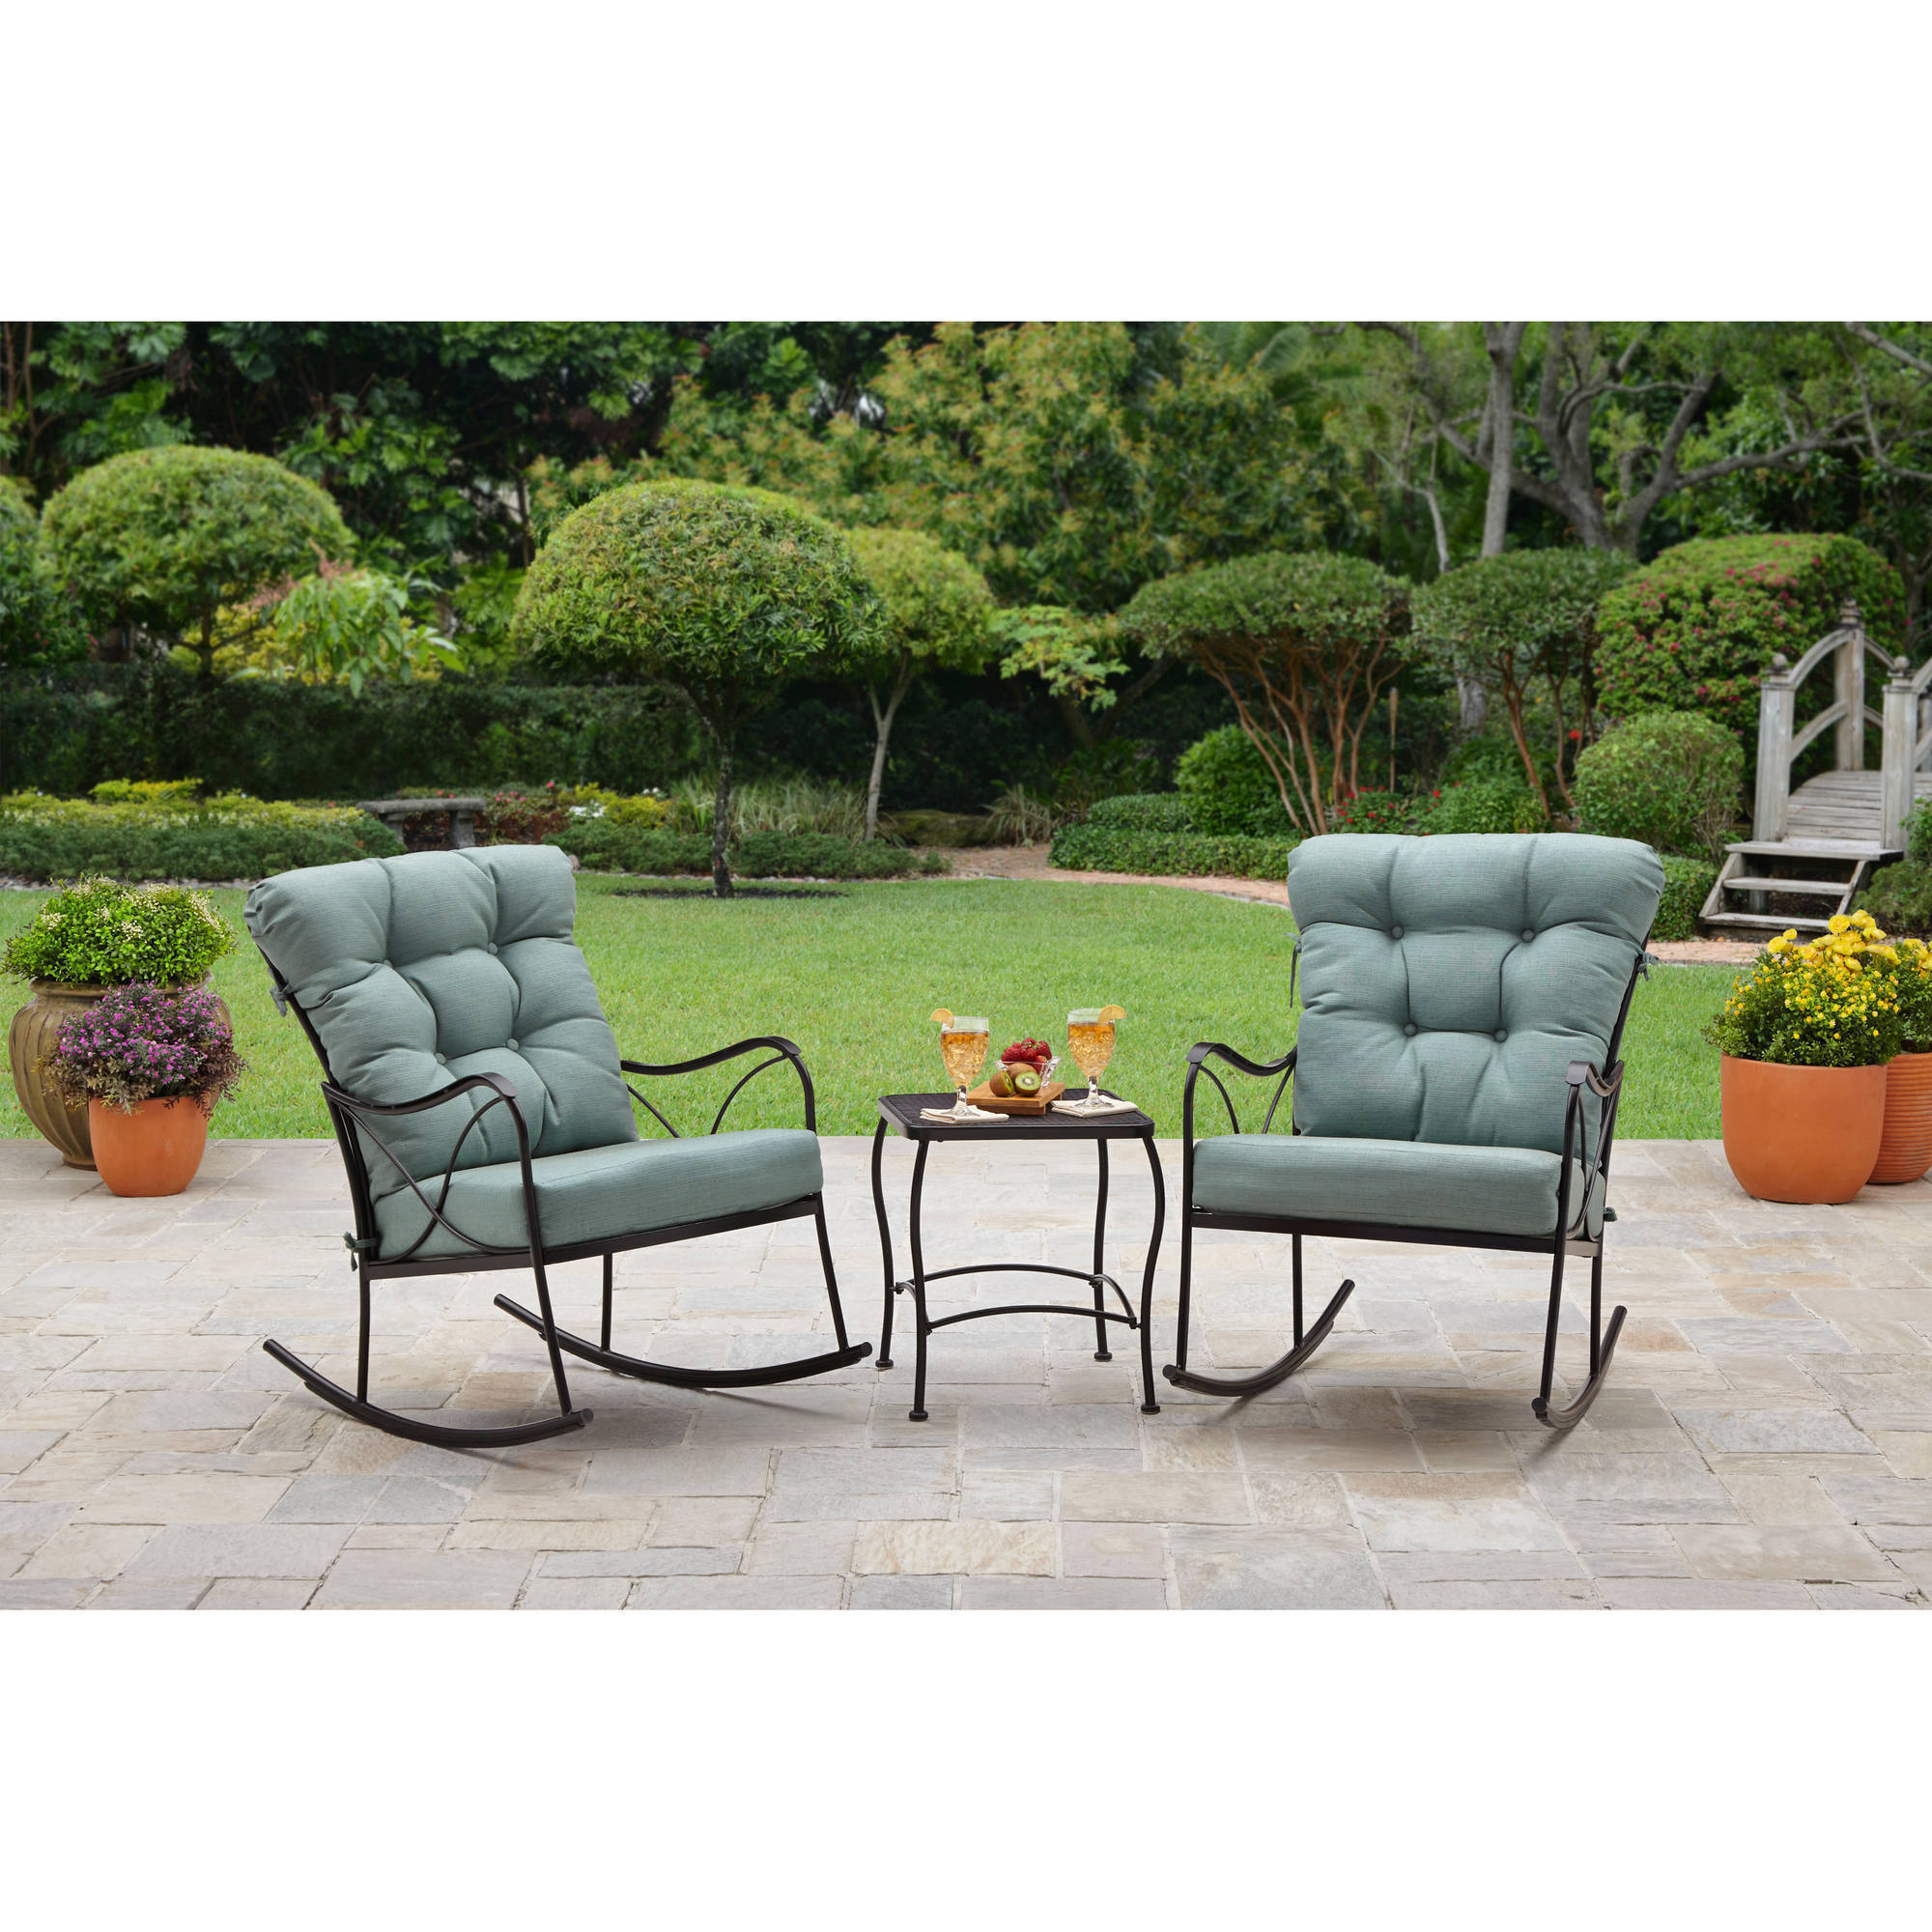 Better Homes and Gardens Seacliff 3-Piece Rocking Chair Bistro Set